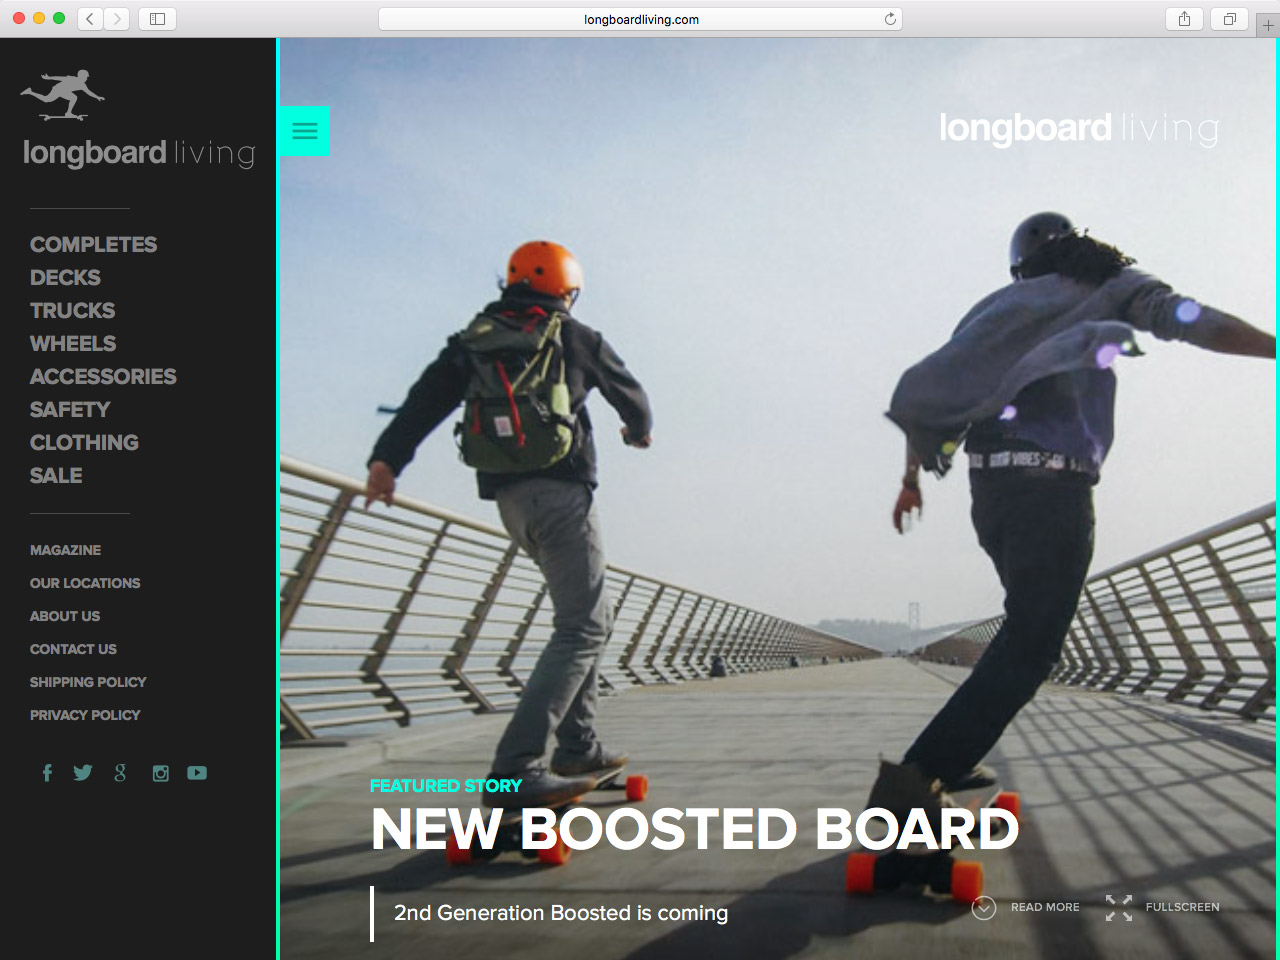 A real-world example of a vertical list on Longboard Living's website